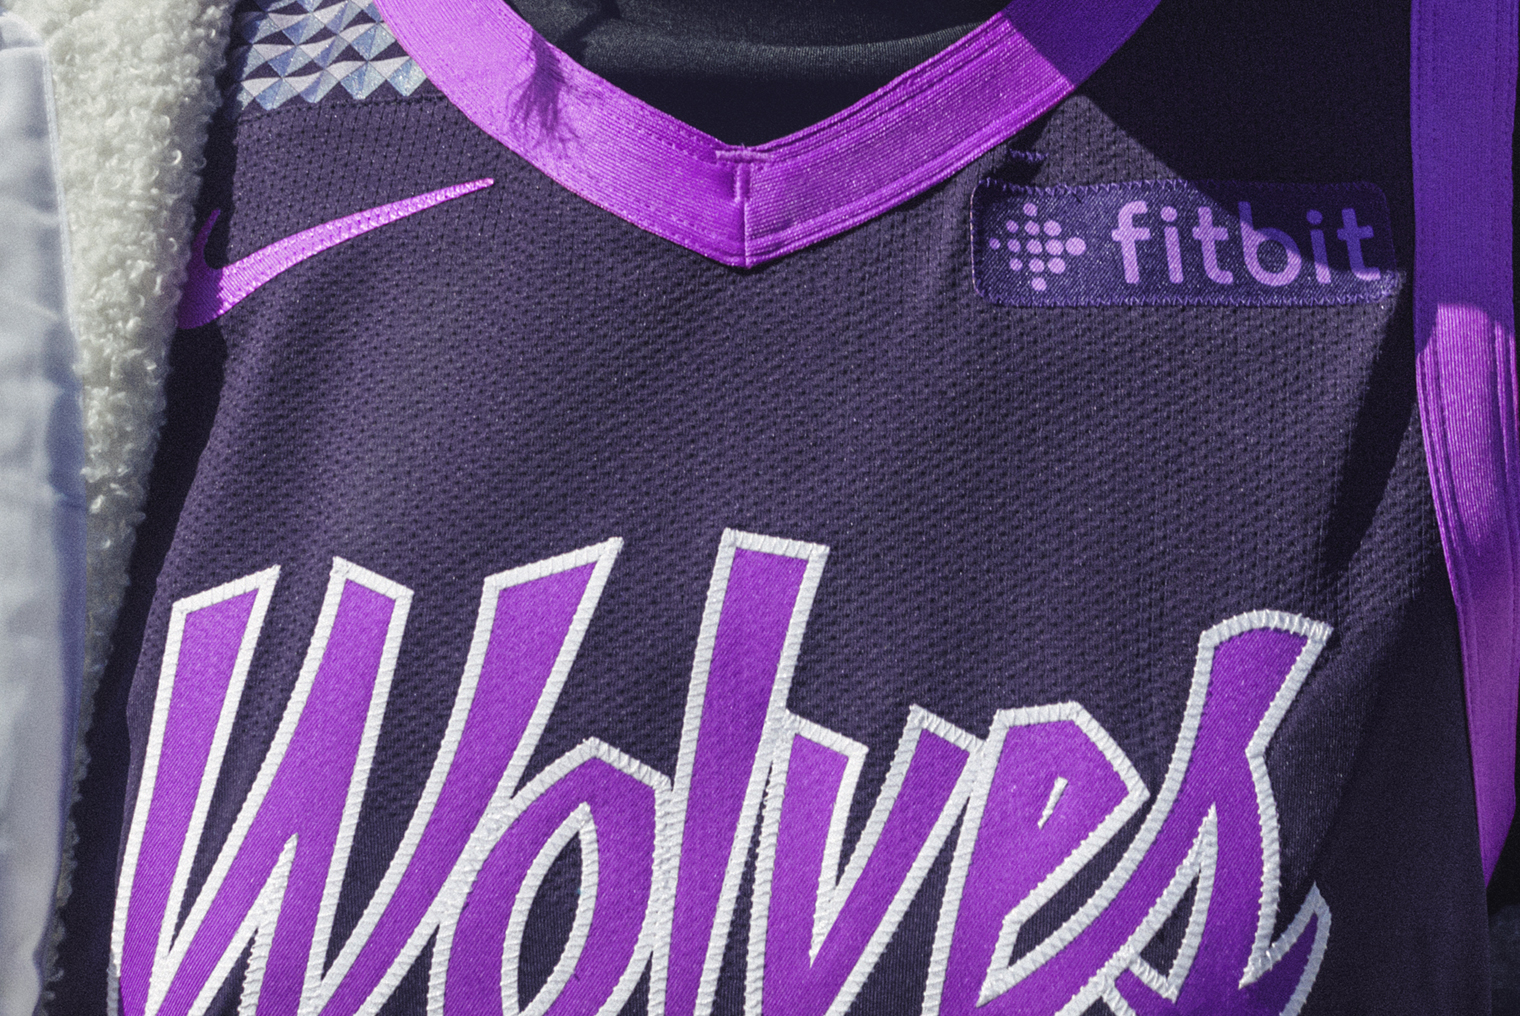 Timberwolves Jersey Gallery Image